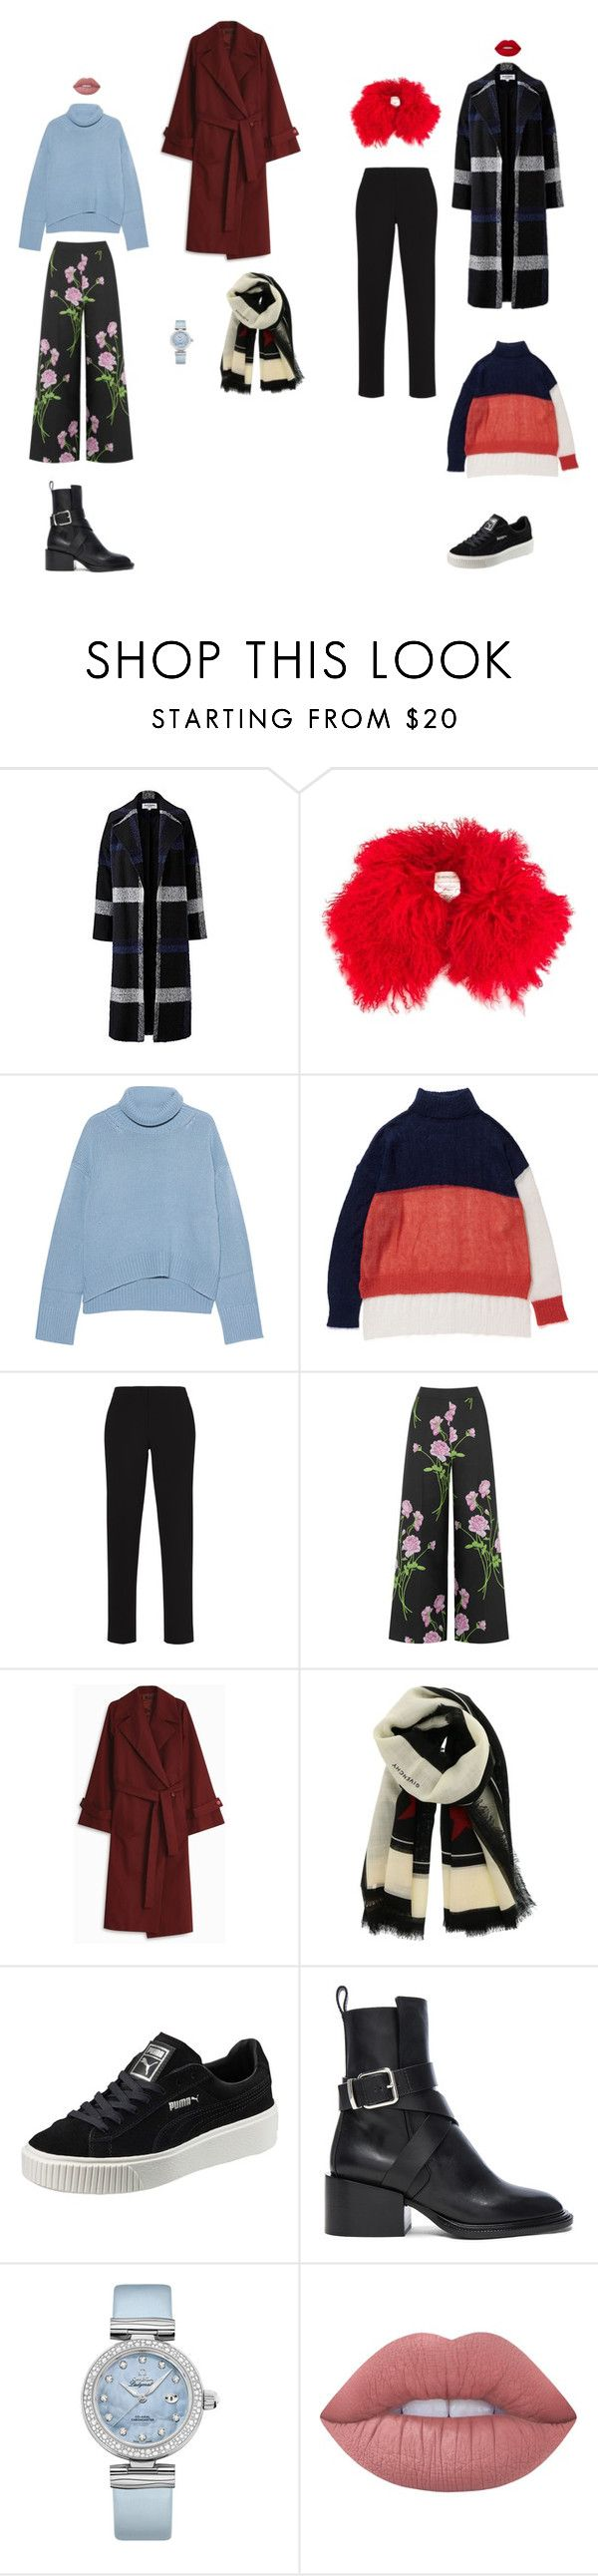 """winterwalks"" by neiman-bags on Polyvore featuring мода, Helene Berman, Moncler, iHeart, BCBGMAXAZRIA, Warehouse, The Row, Givenchy, Puma и Jil Sander"